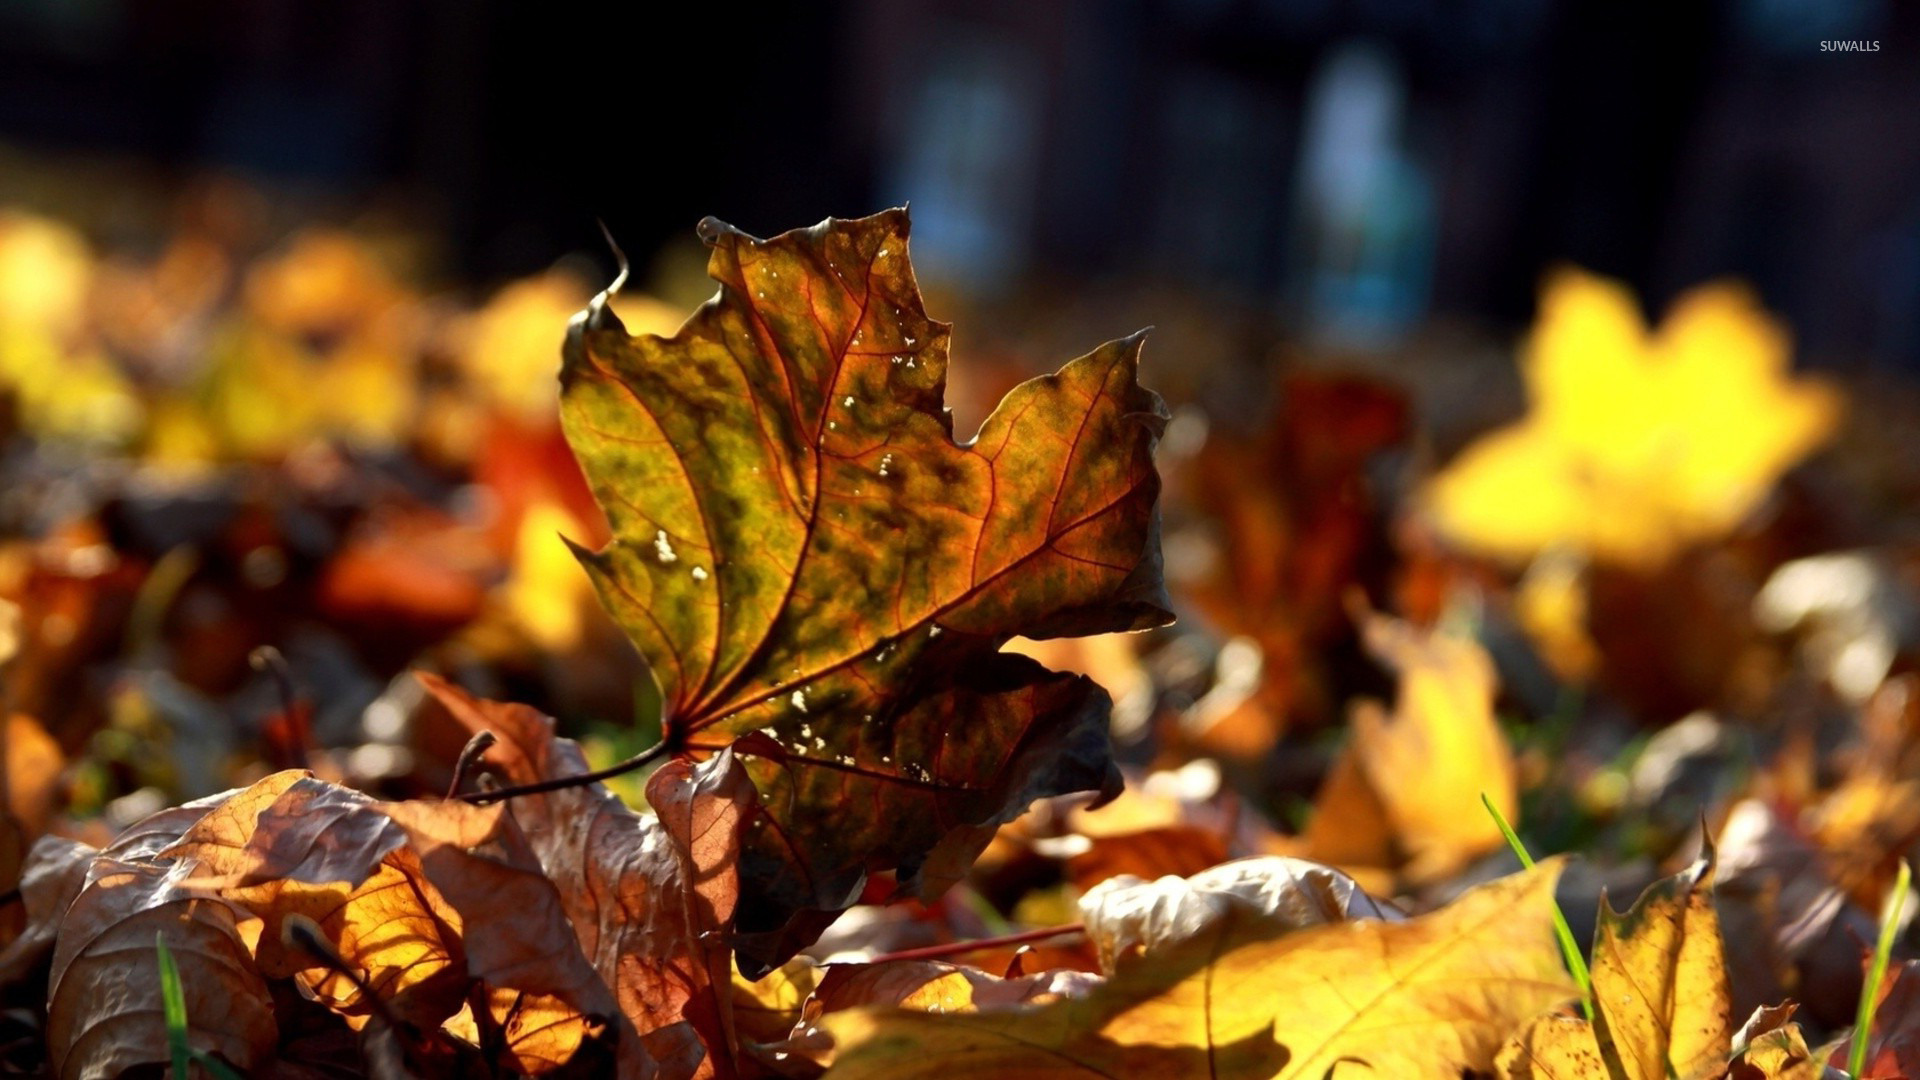 Dry Autumn Leaves wallpaper - Nature wallpapers - #15504